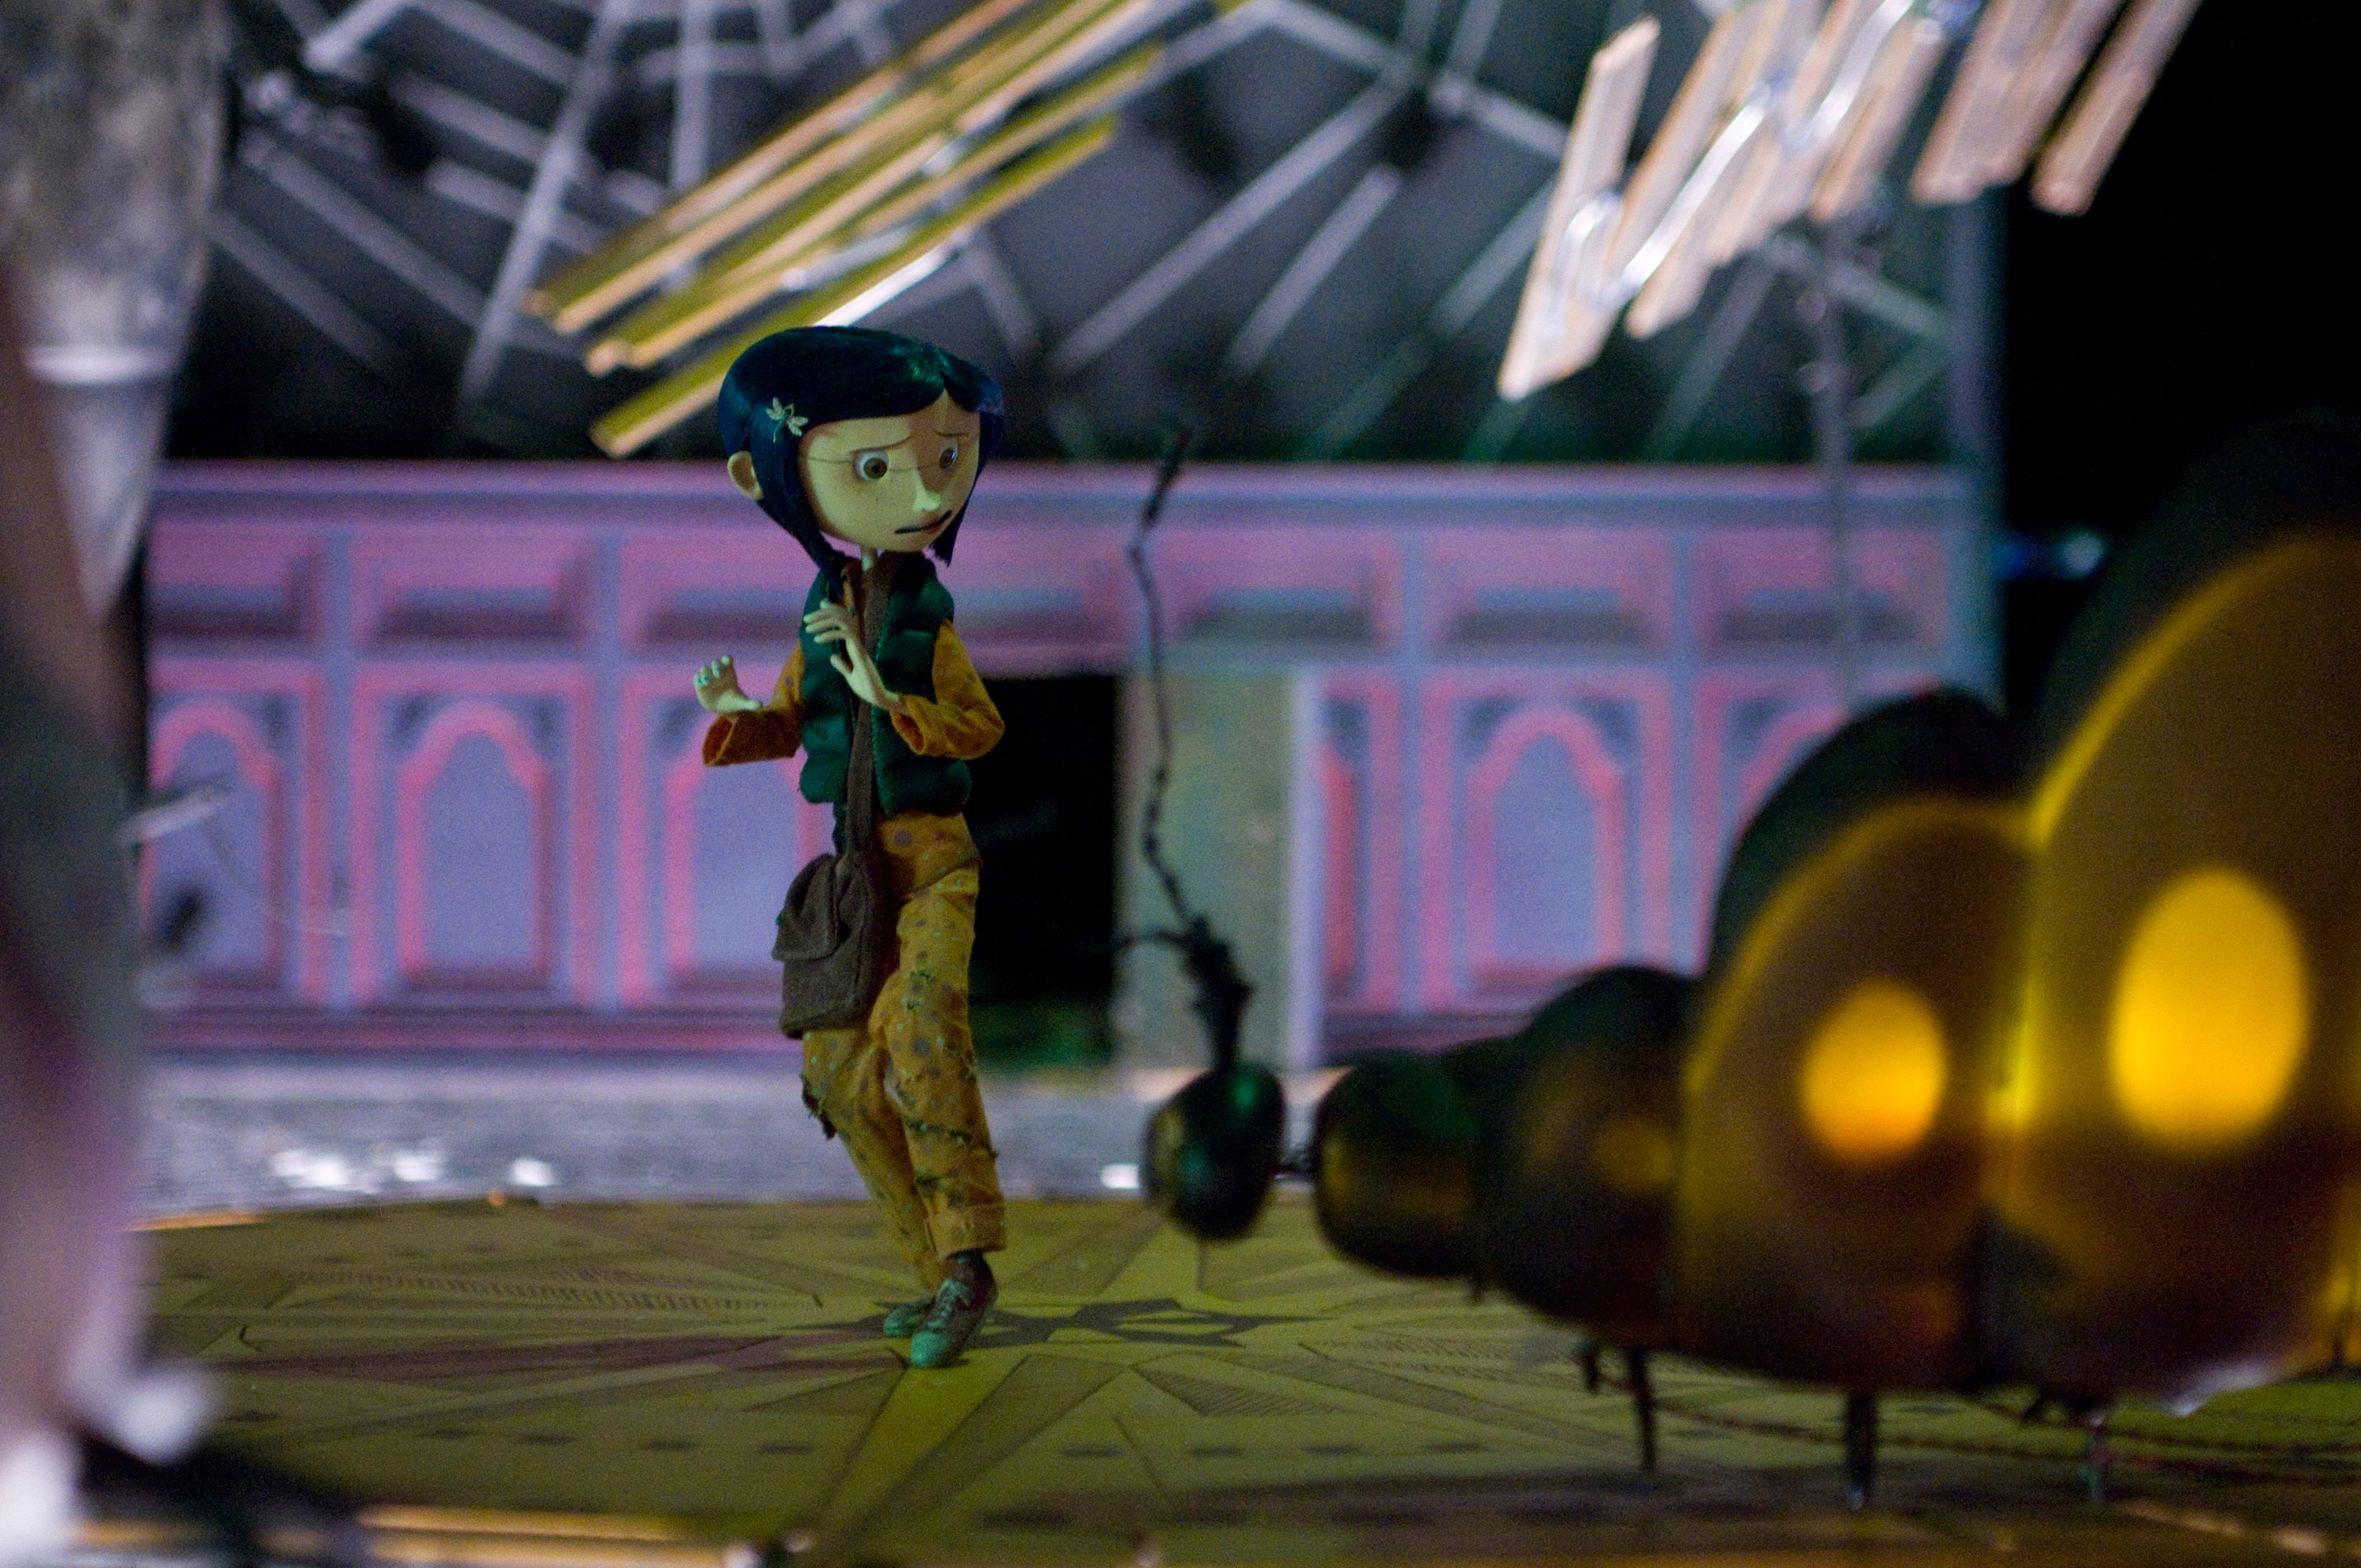 New CORALINE Movie Images – With a Collider Exclusive